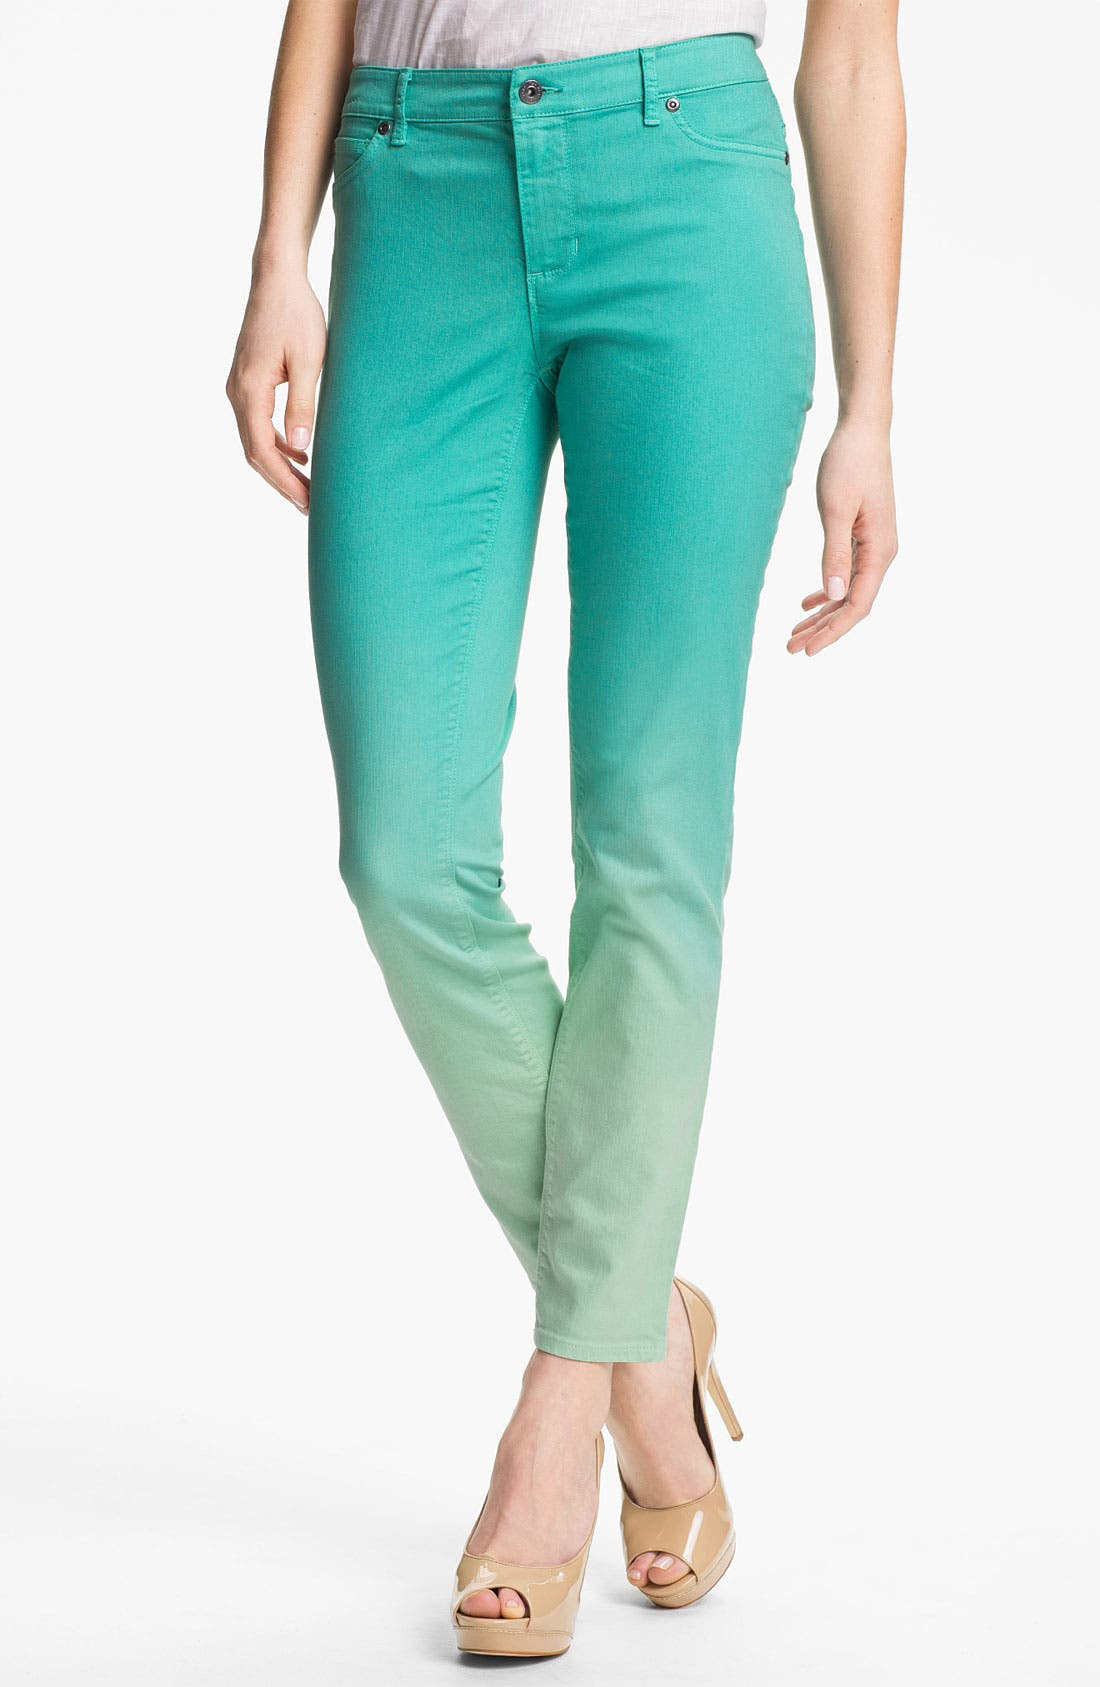 Alternate Image 1 Selected - Two by Vince Camuto Dip Dye Straight Leg Jeans